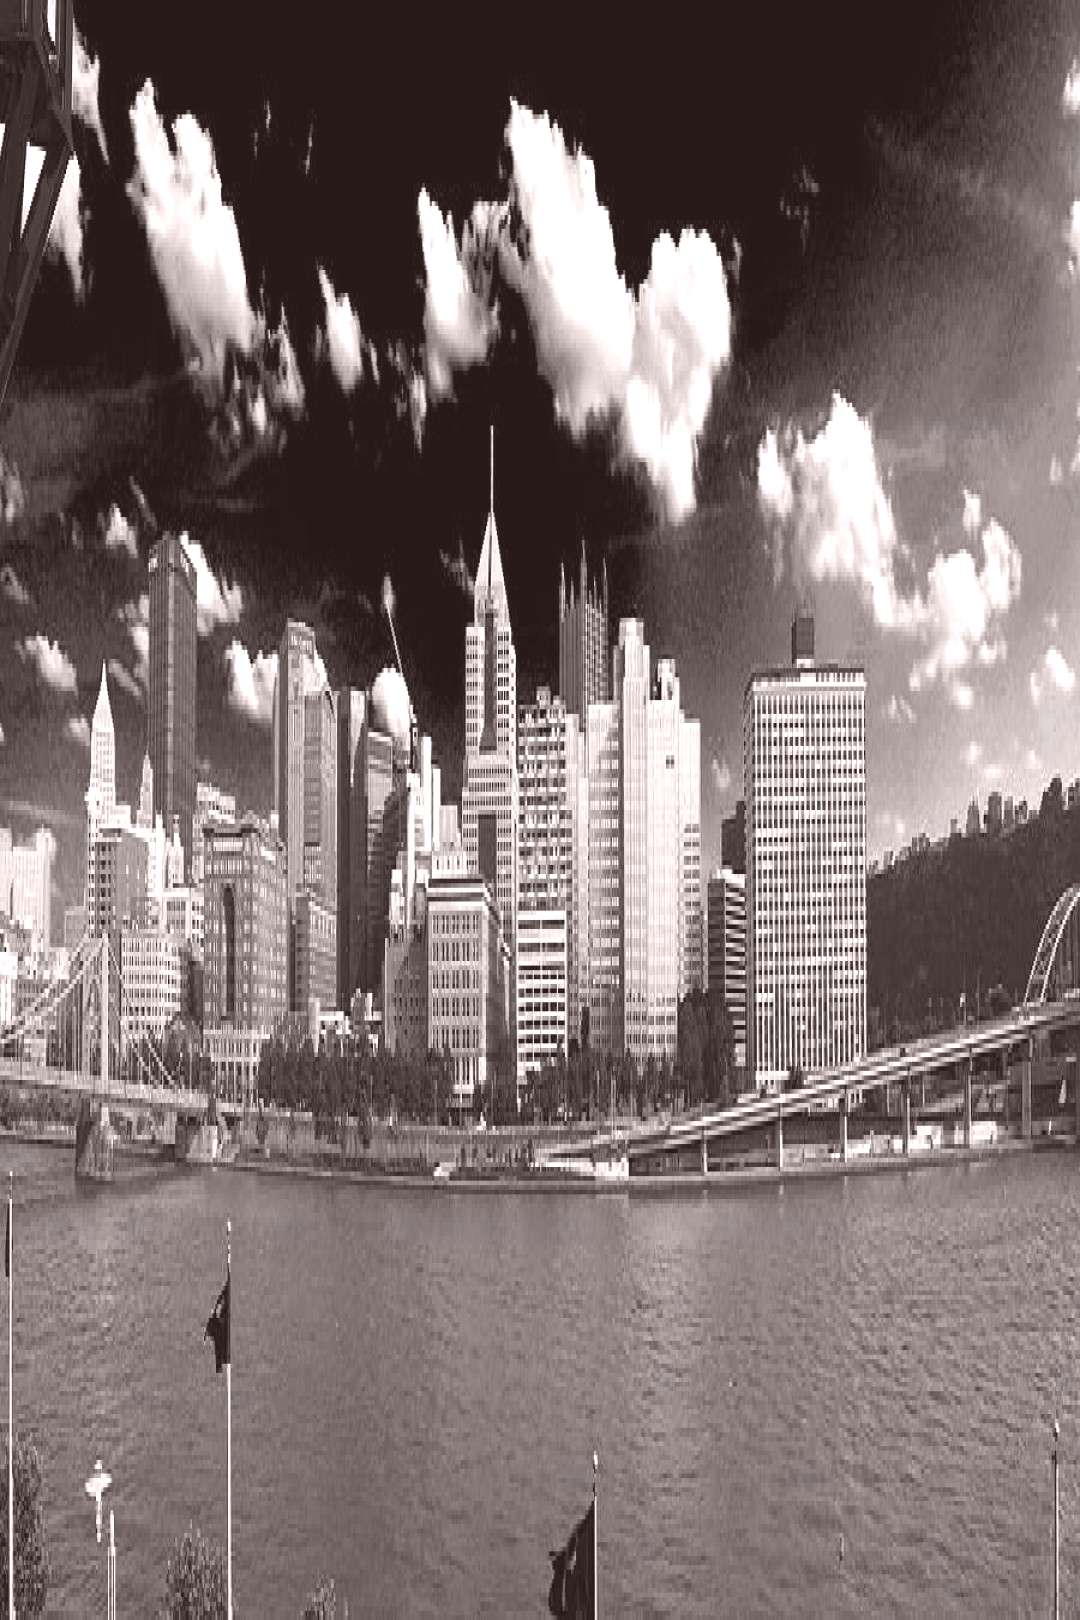 Photograph - Downtown Pittsburgh From The North Side Bw by C H Apperson ,